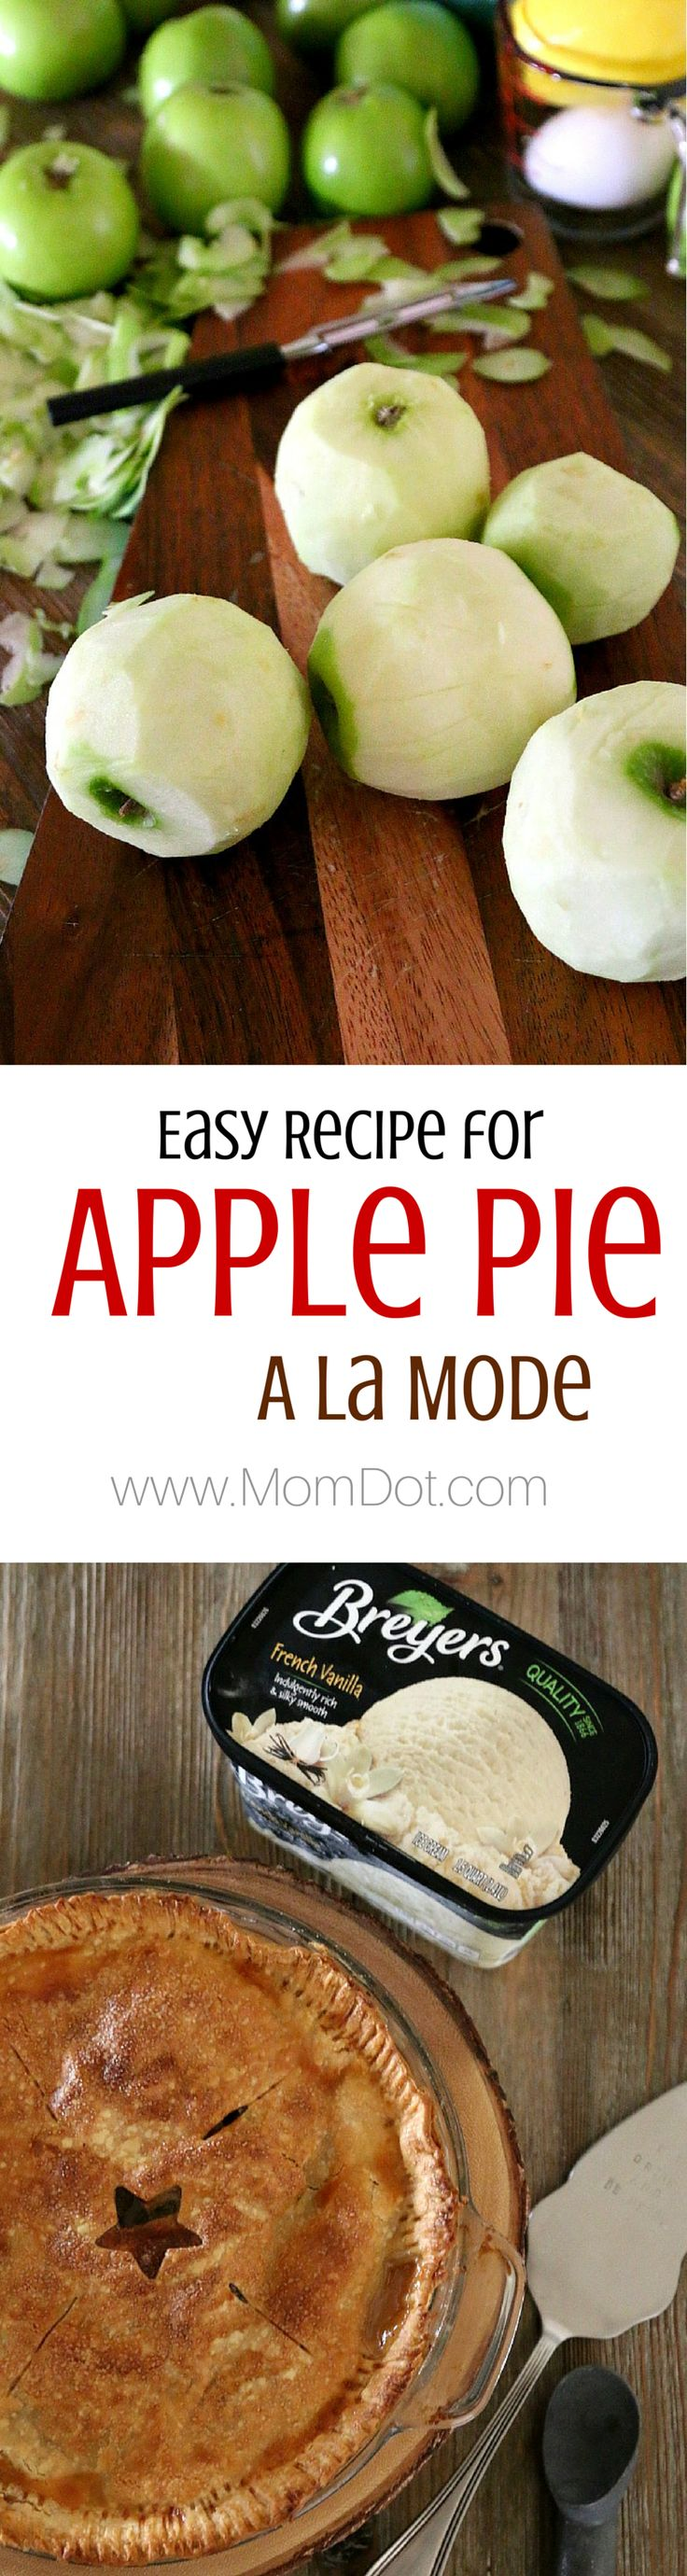 Easy Apple Pie Recipe (and make it a la mode with a little ice cream too!) step by step picture instructions from a first time apple pie maker- if i can do it, you can too!